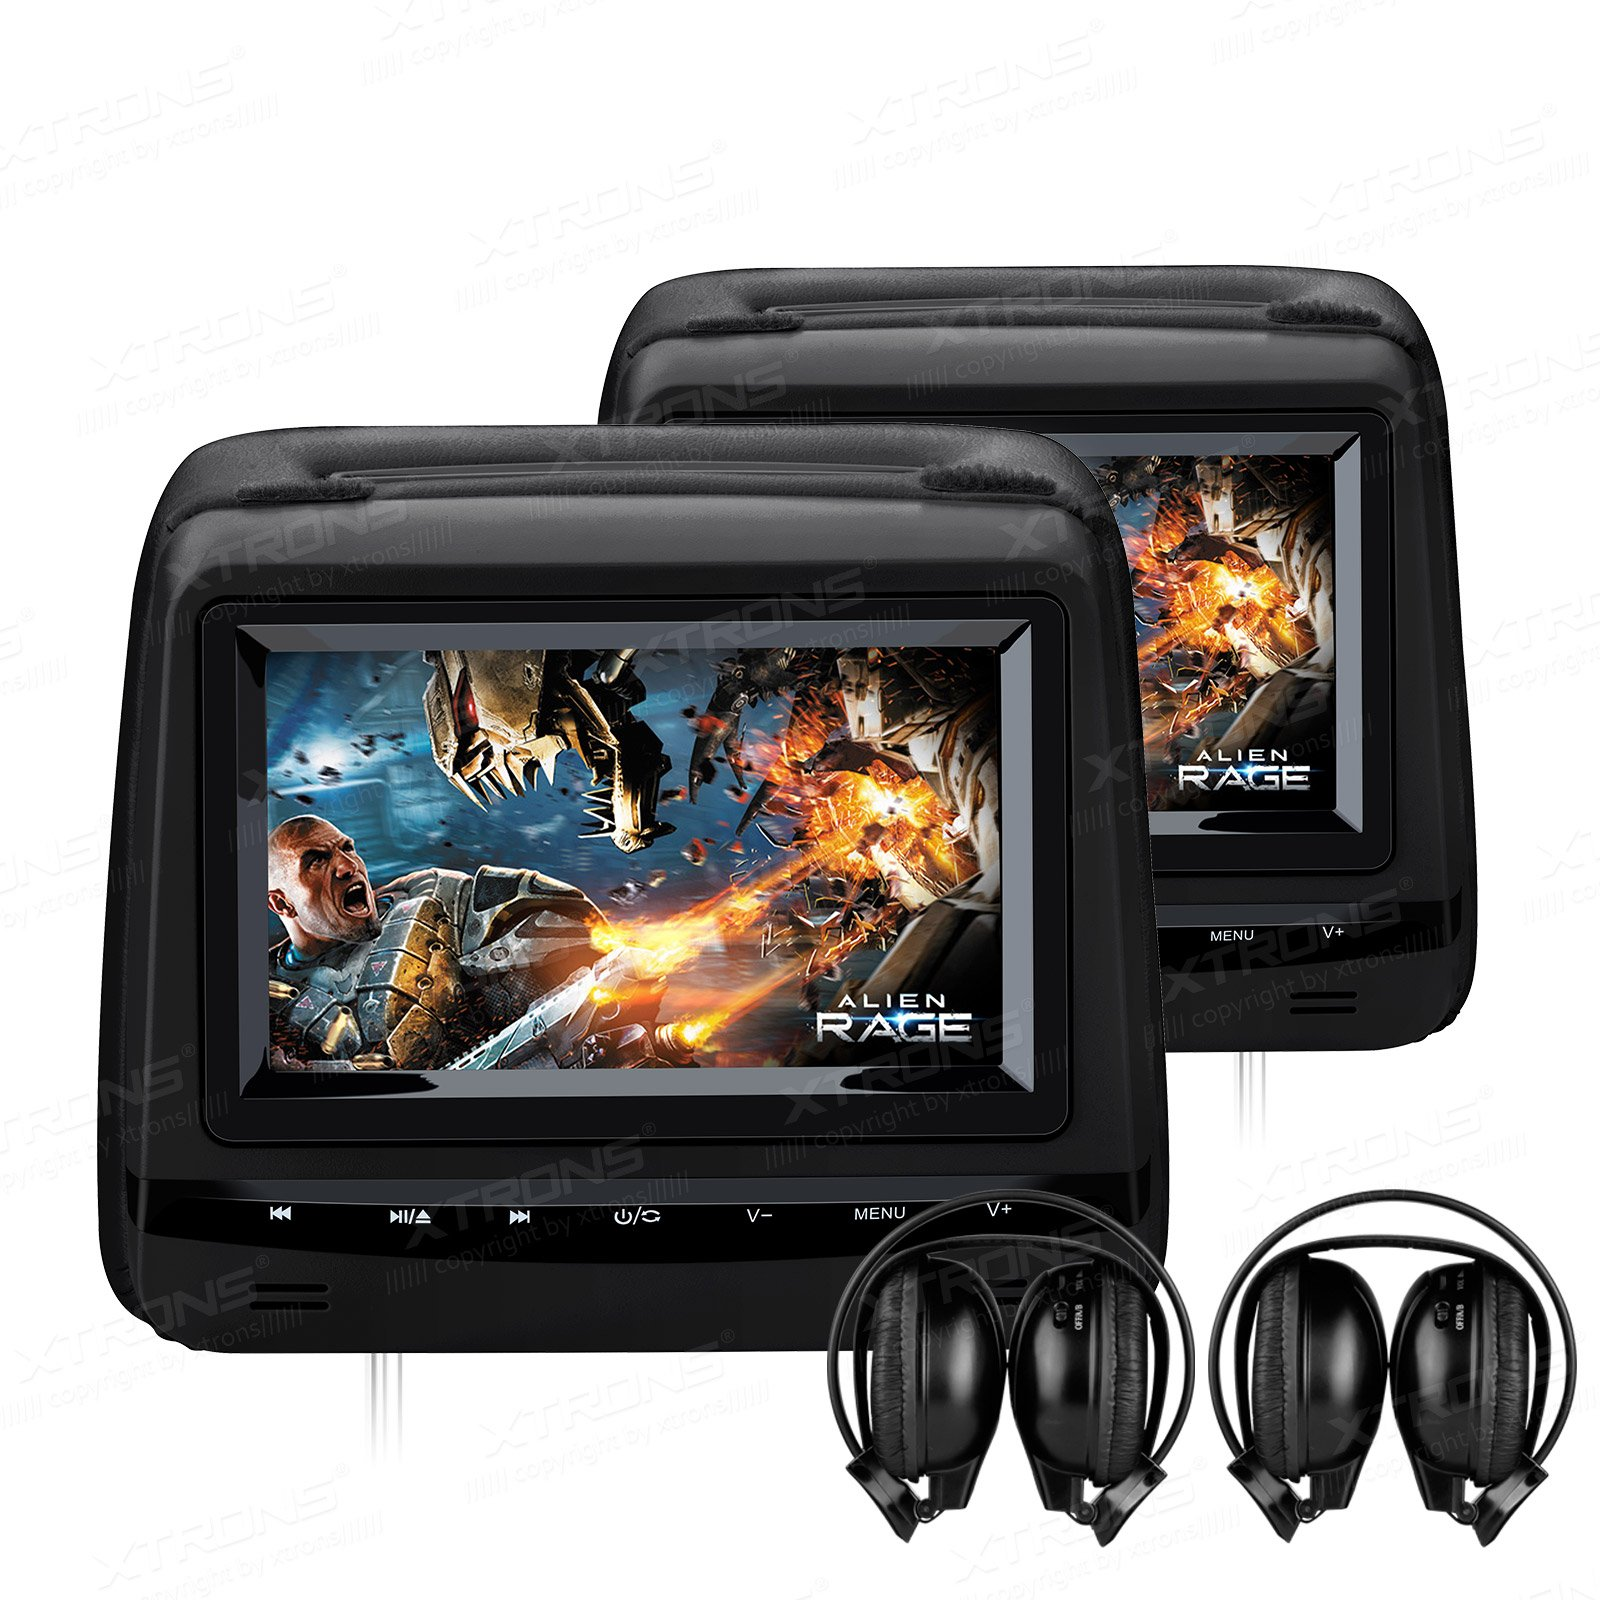 XTRONS Black Twin 2x7'' Touch Panel HD Digital Screen Car Headrest DVD Player Monitor Adjustable Viewing Angles TV Game IR Headphones Included (HD729Black+DWH002x2)